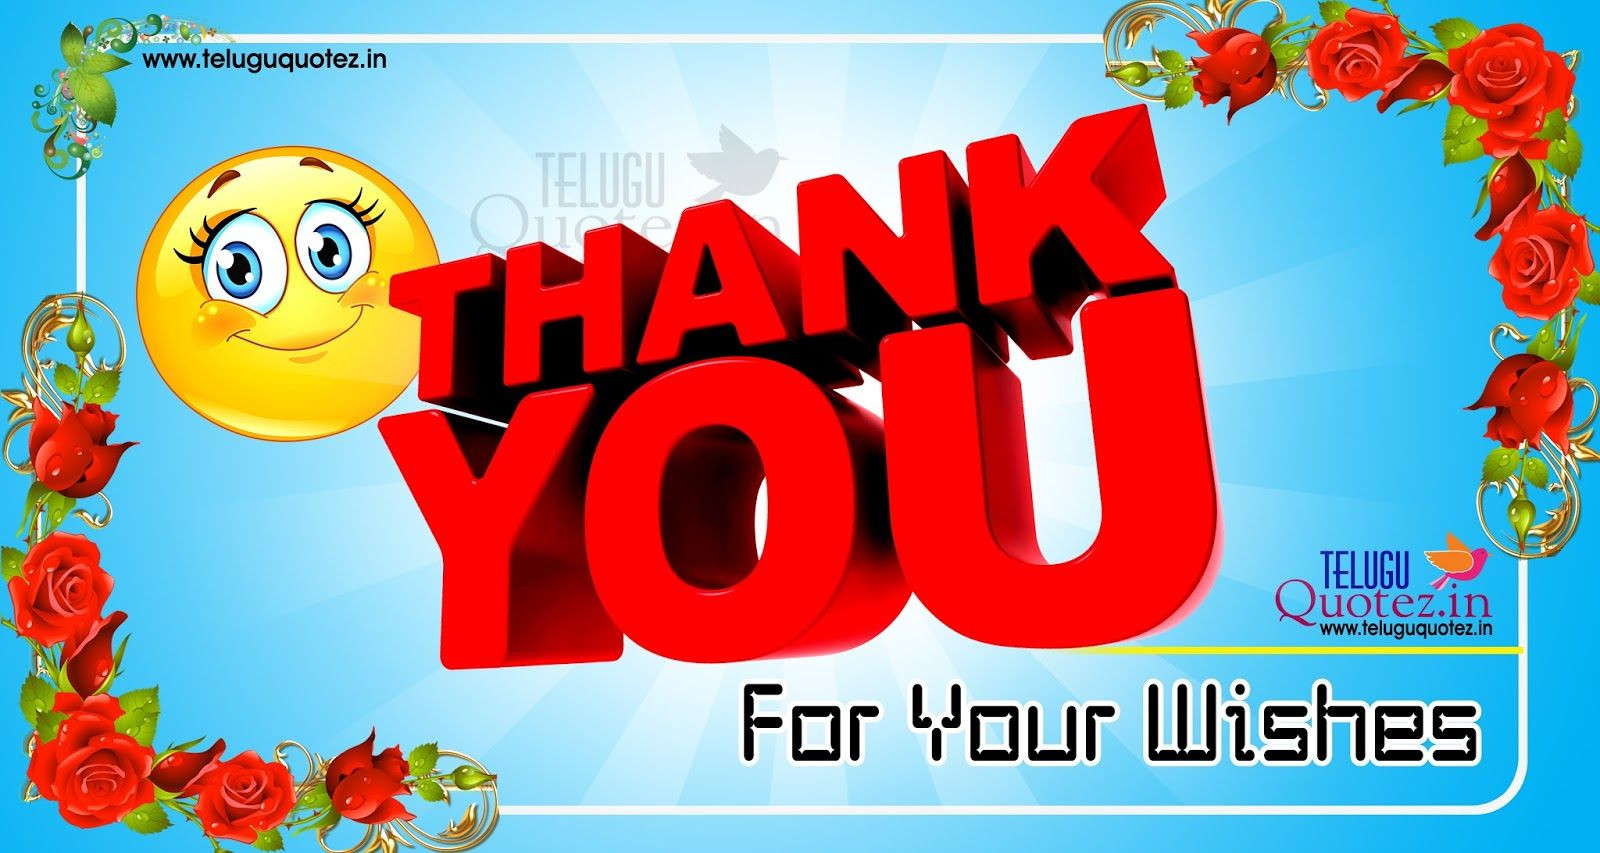 birthday thank you message in hindi ; greeting-cards-birthday-in-hindi-unique-thank-you-quotes-images-for-friends-wishes-teluguquotez-telugu-gallery-of-greeting-cards-birthday-in-hindi